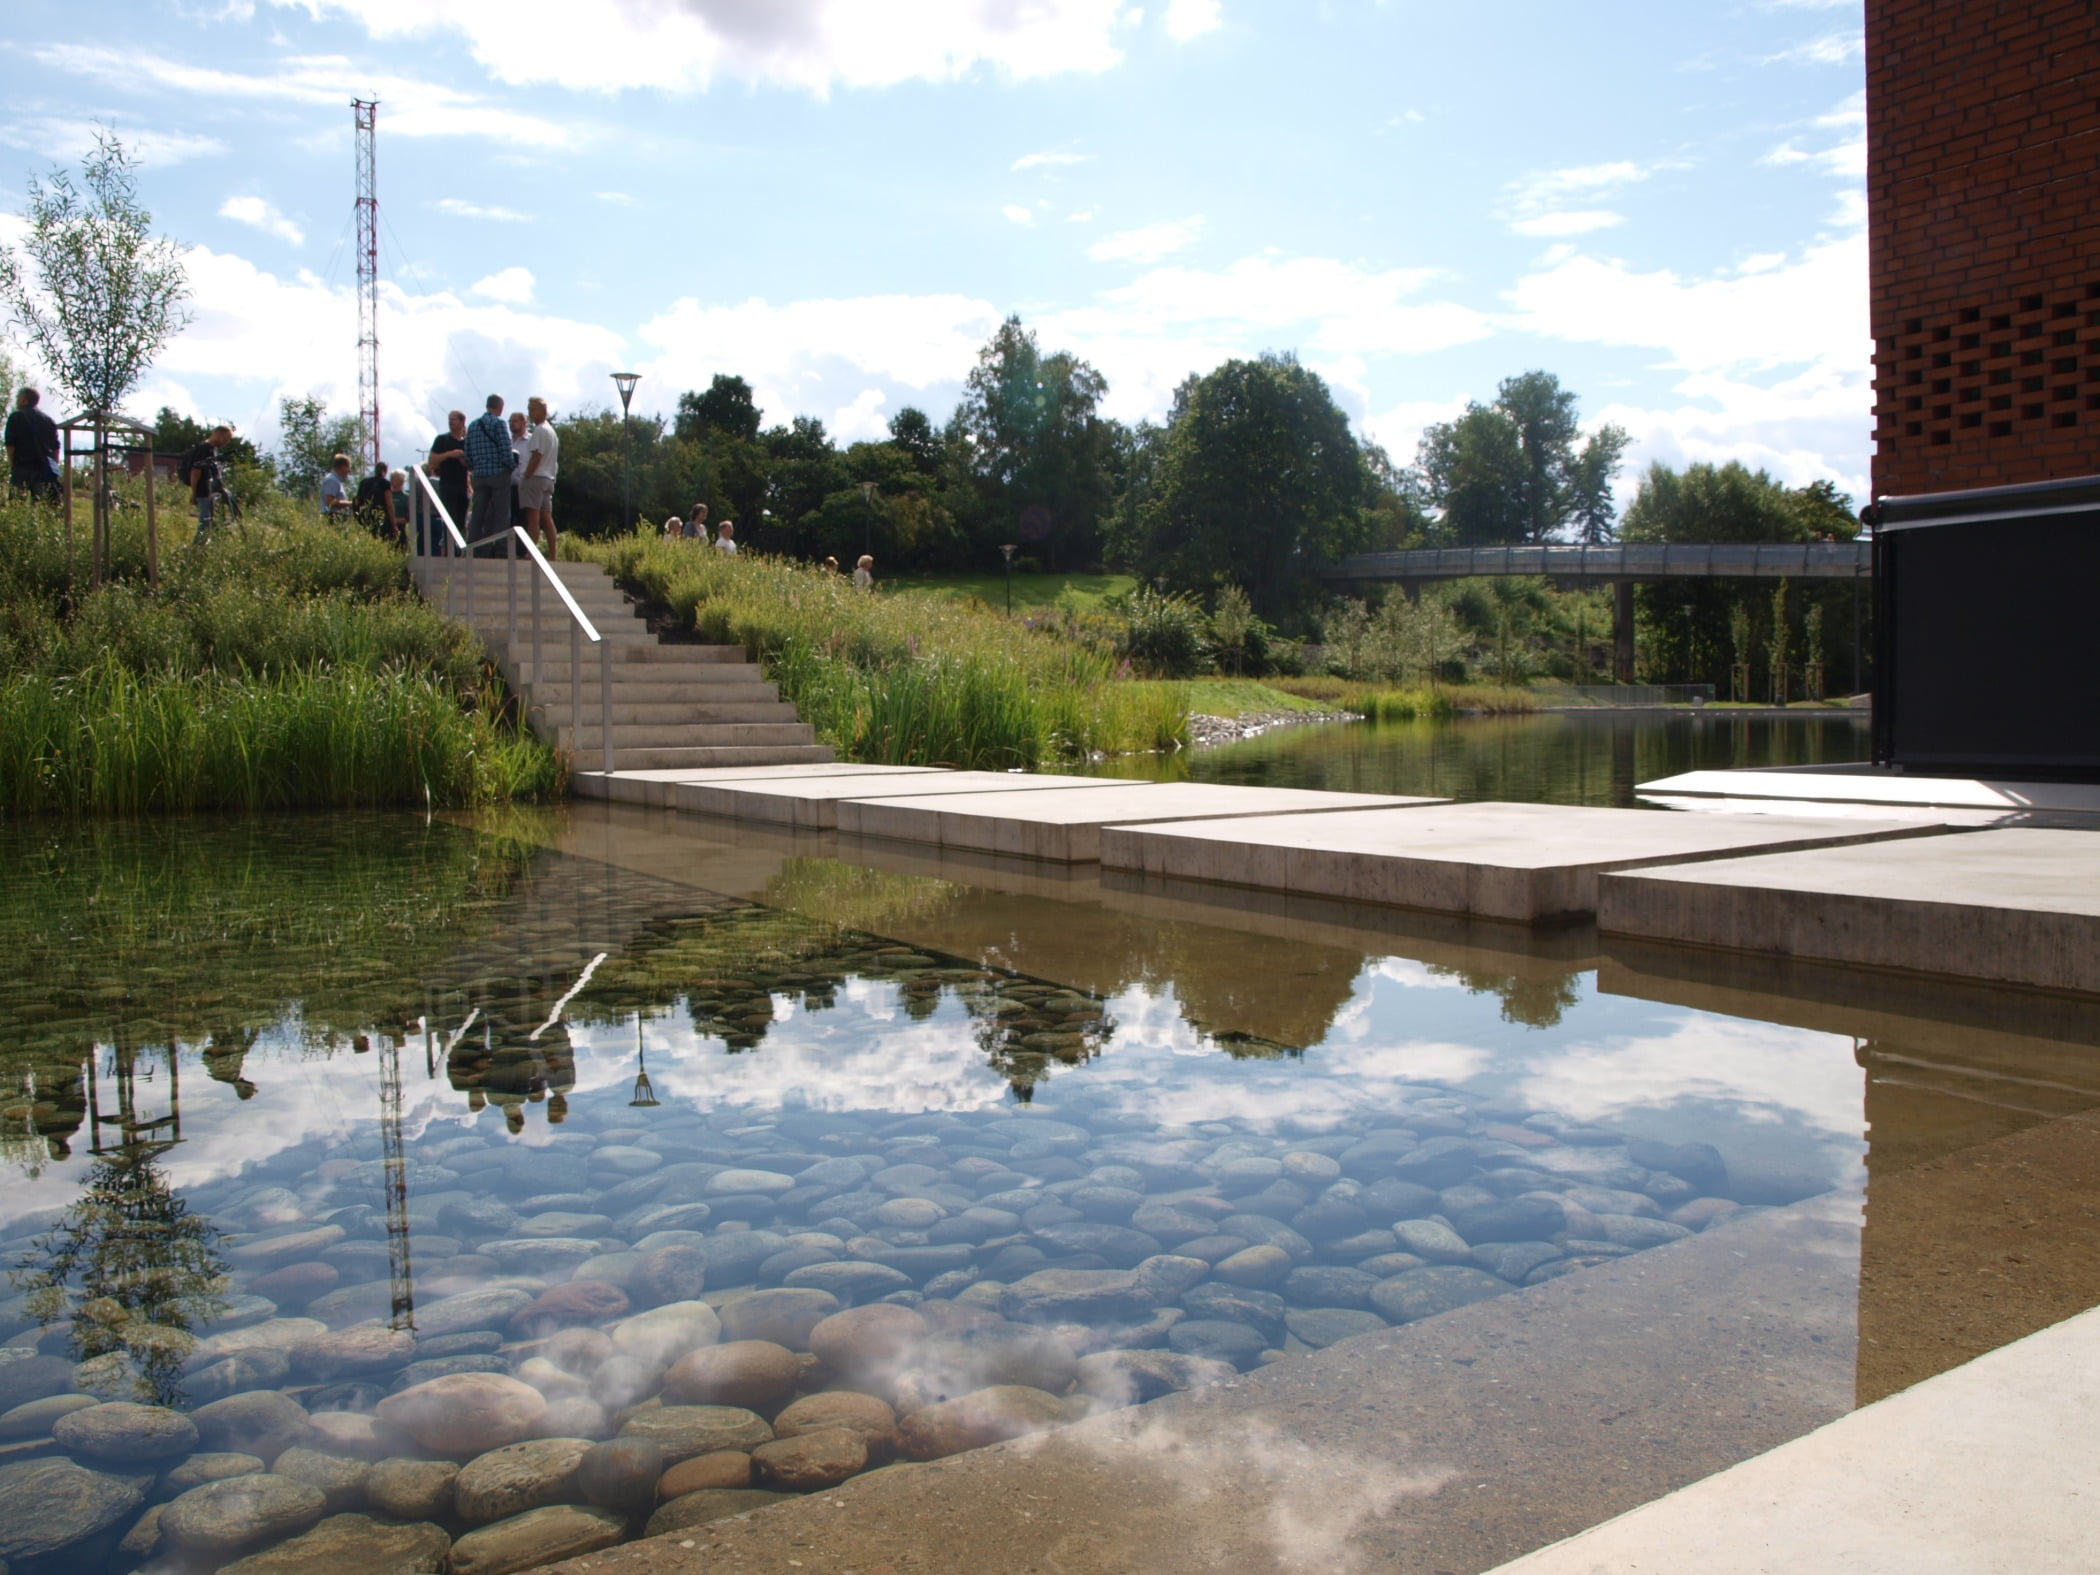 Composite material, Pond, Reflection